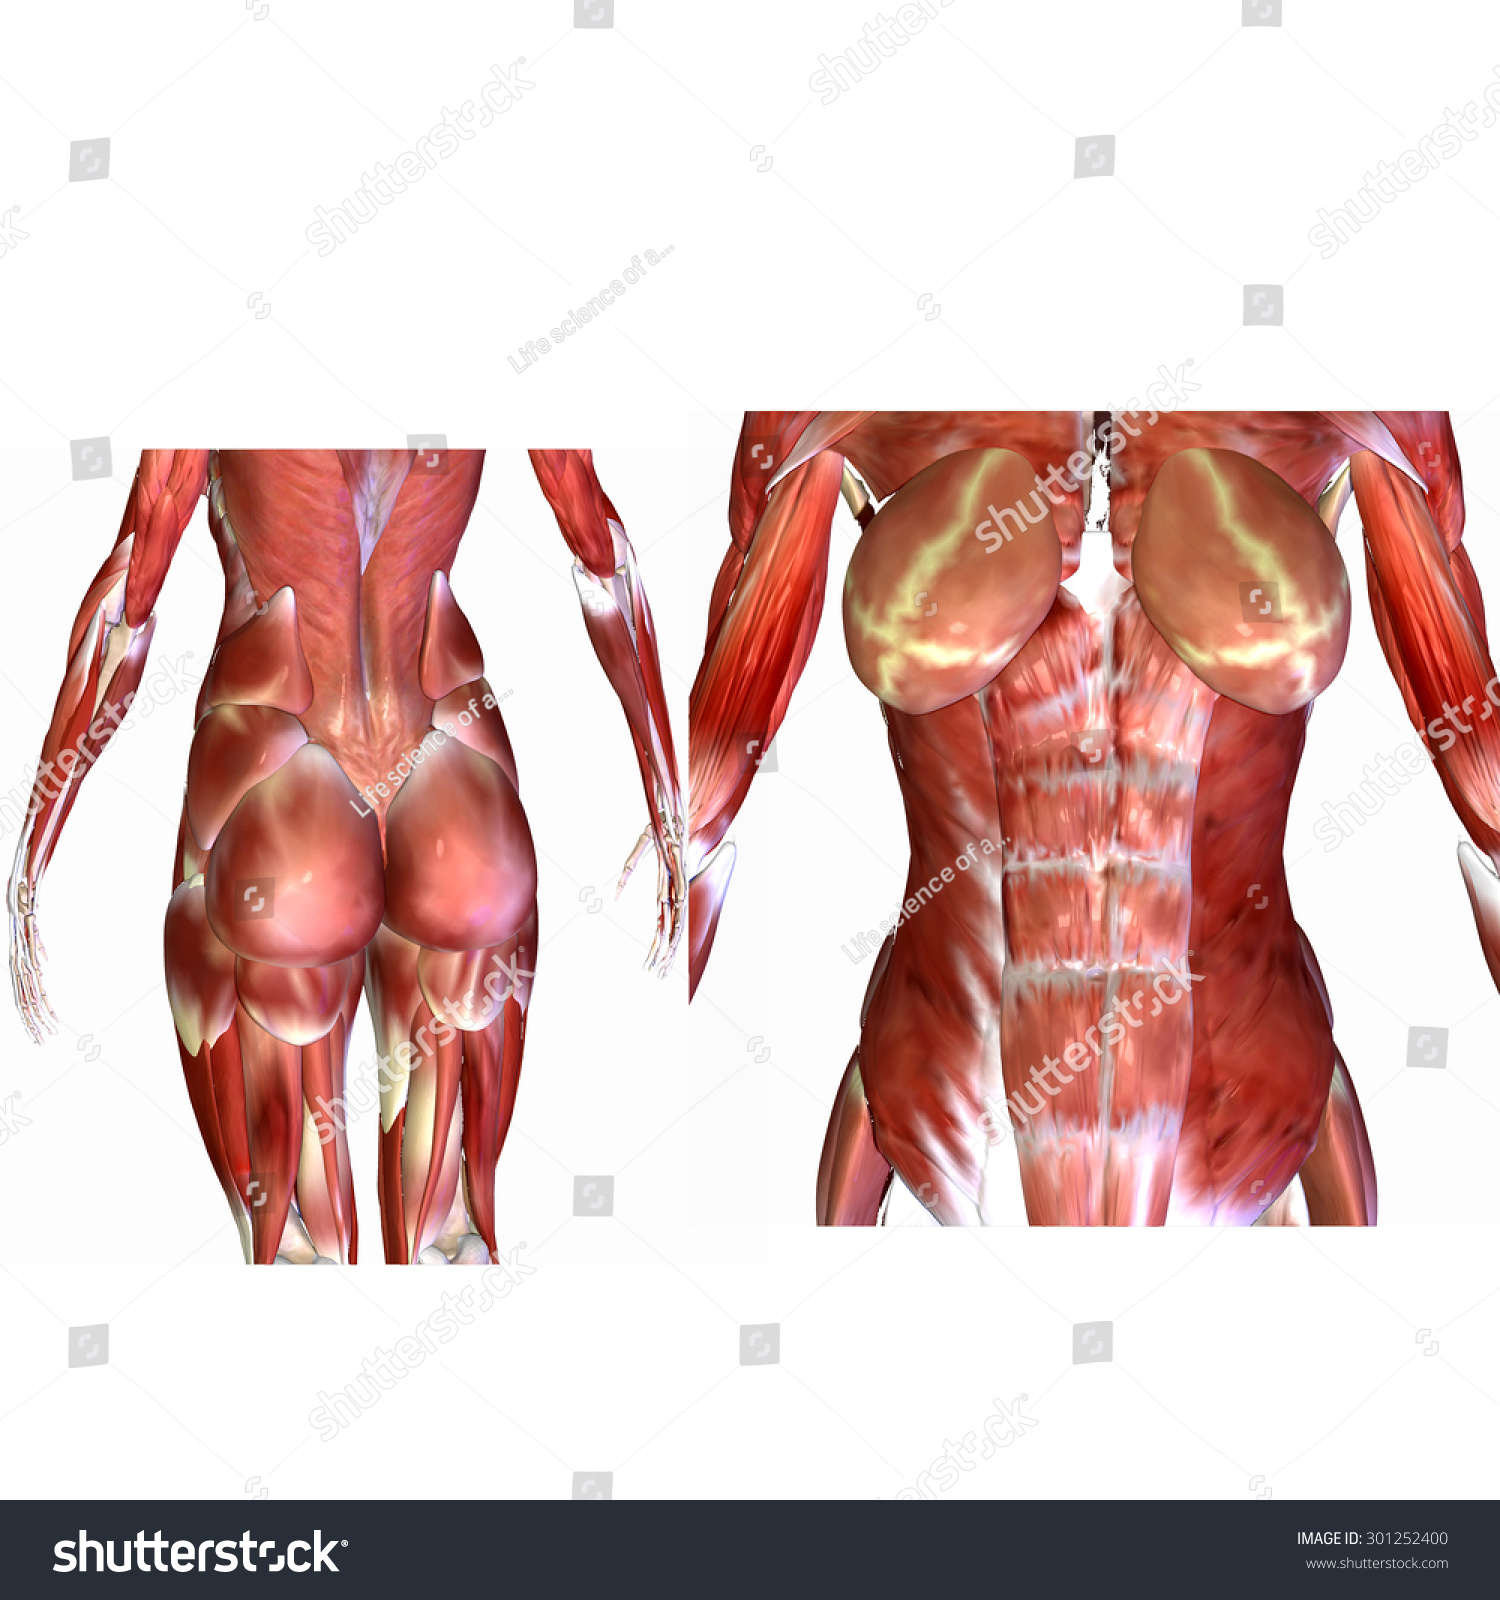 female human body muscles stock illustration 301252400 - shutterstock, Muscles